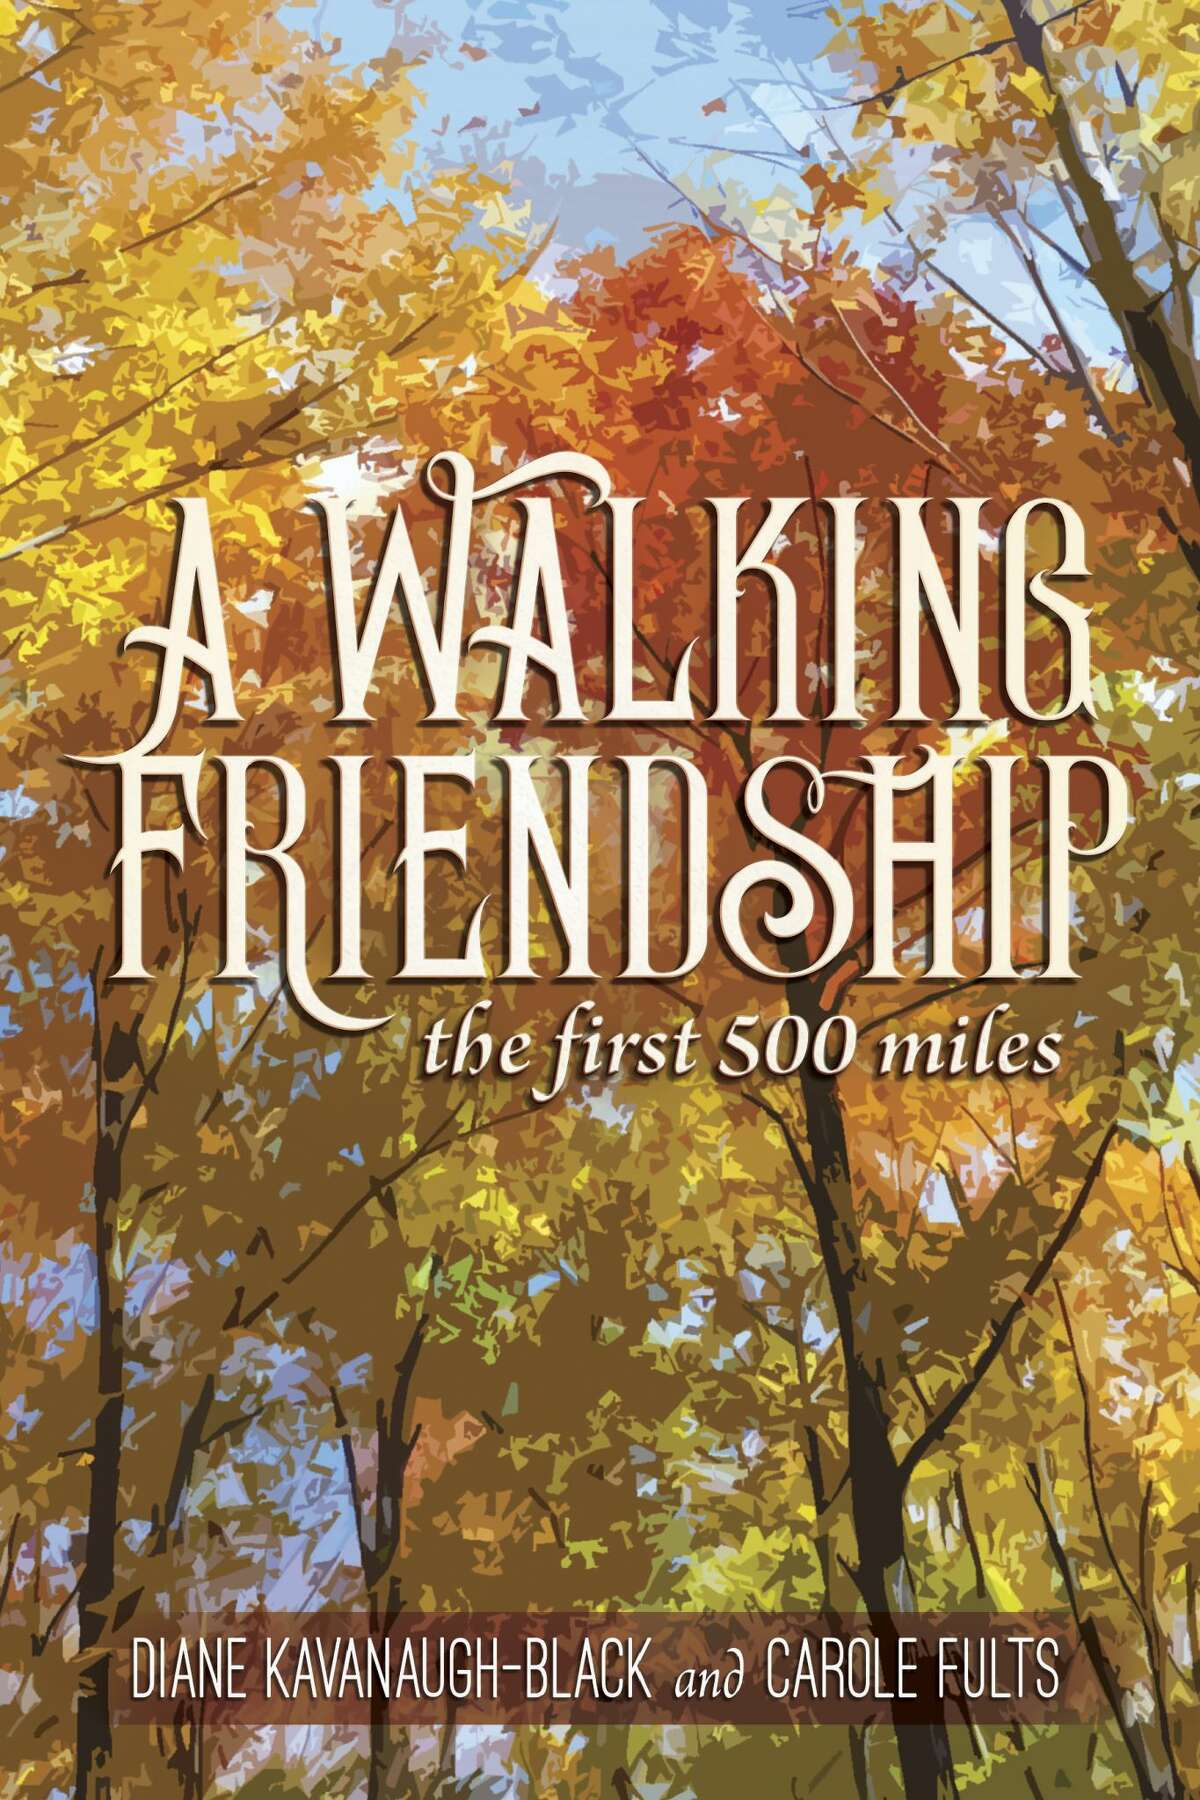 """In their book, """"A Walking Friendship: The first 500 miles,"""" Capital Region residents Diane Kavanaugh-Black and Carole Fults share their experiences visiting the Partridge Run Wildlife Management Area in Berne over the course of eight years."""